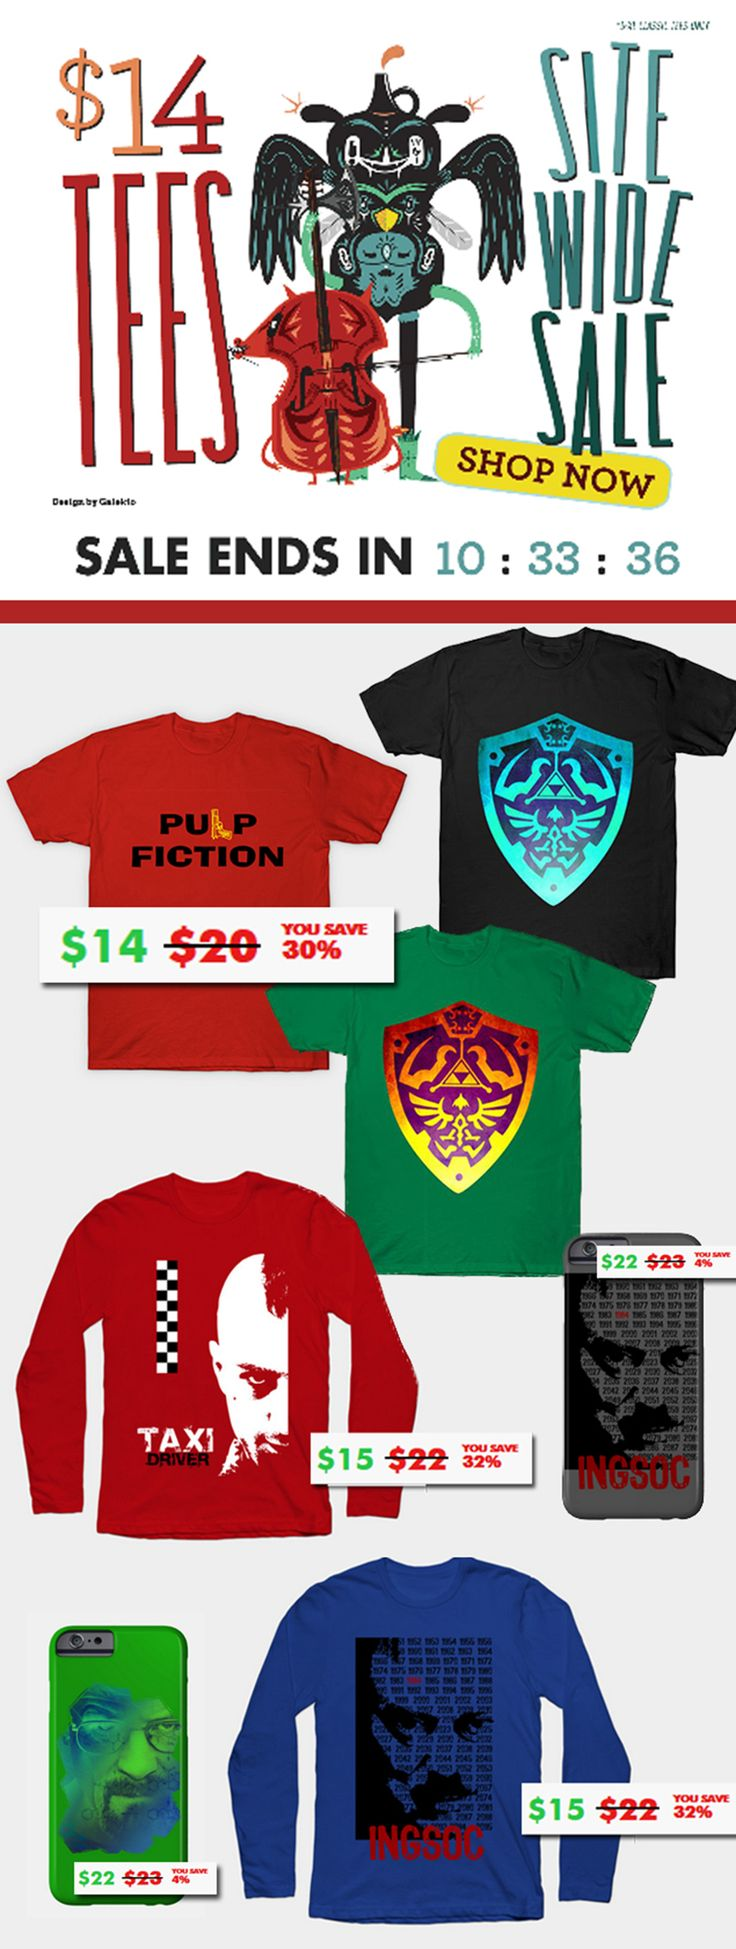 All T-Shirts $14 !!! Big Sales on All Products! #movietshirts #film  #iphonecases #longsleevetshirts #xmasgifts #christmasgifts #cinematshirts #art #fashion #style #online #shopping #tshirt #breakingbad #pulpfiction #cinema #movies #giftsforhim #thelegendofzelda #thelegendofzeldatshirt #sales #tshirts #discount #save #zeldatshirt #39 #zeldashield #style #fashion #family #gifts #giftsforhim #giftsforher #gamingtshirt #gamertshirt #videogame #geek #nerd #onlineshopping #teepublic